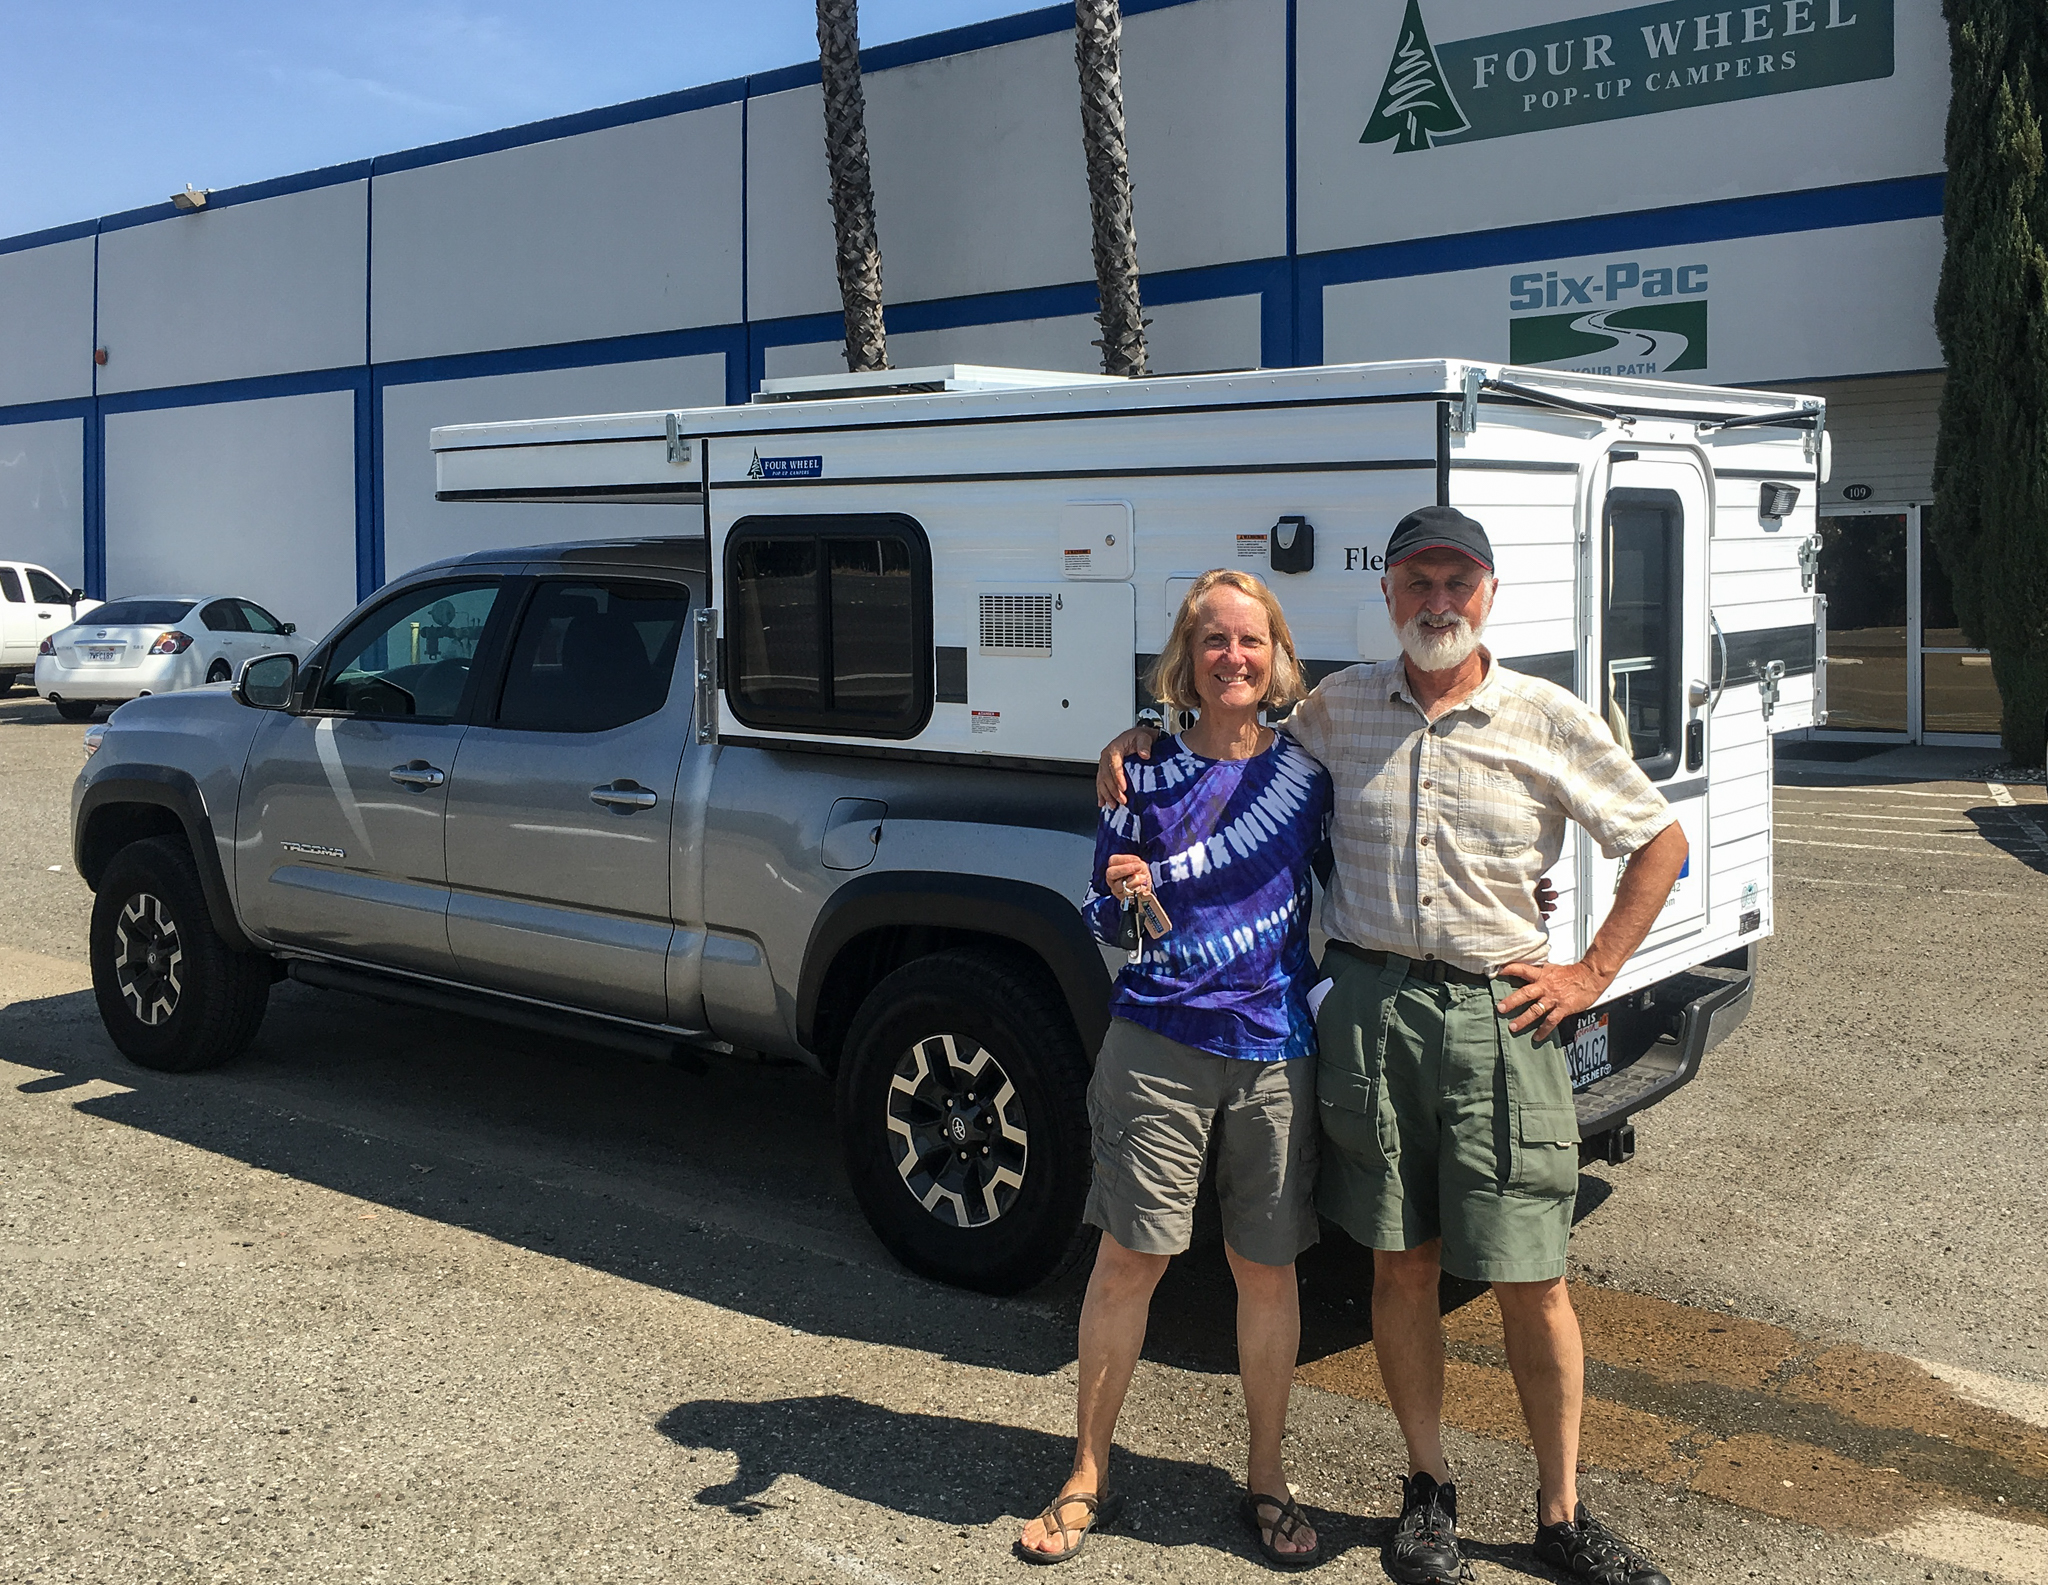 Treve and Joann with their new Four Wheel Camper